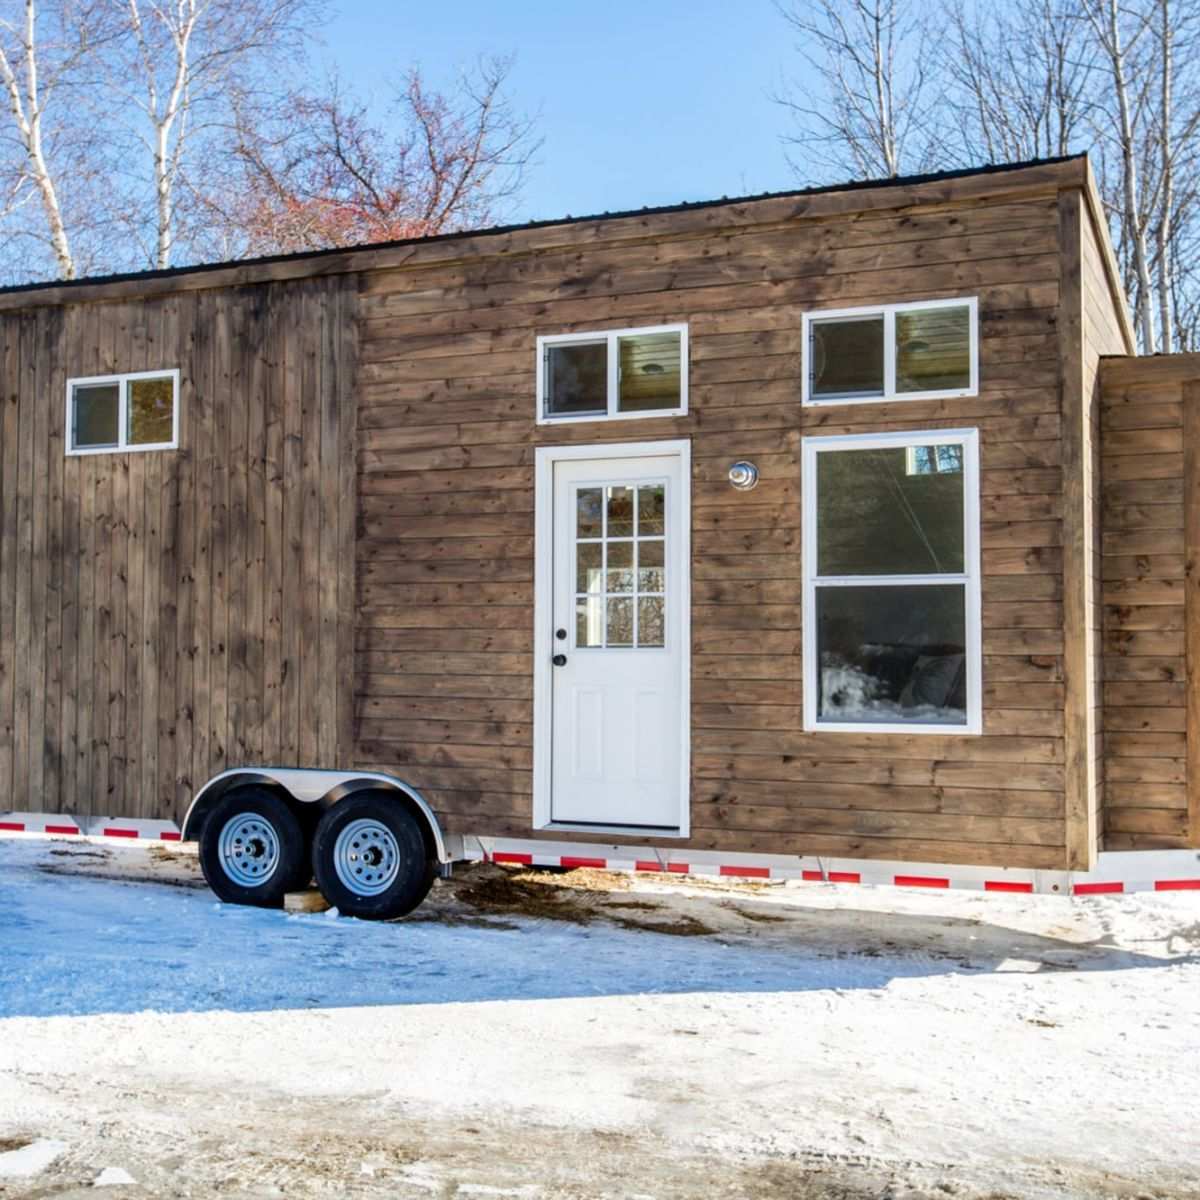 For sale 15 holly st scarborough maine 04074 united